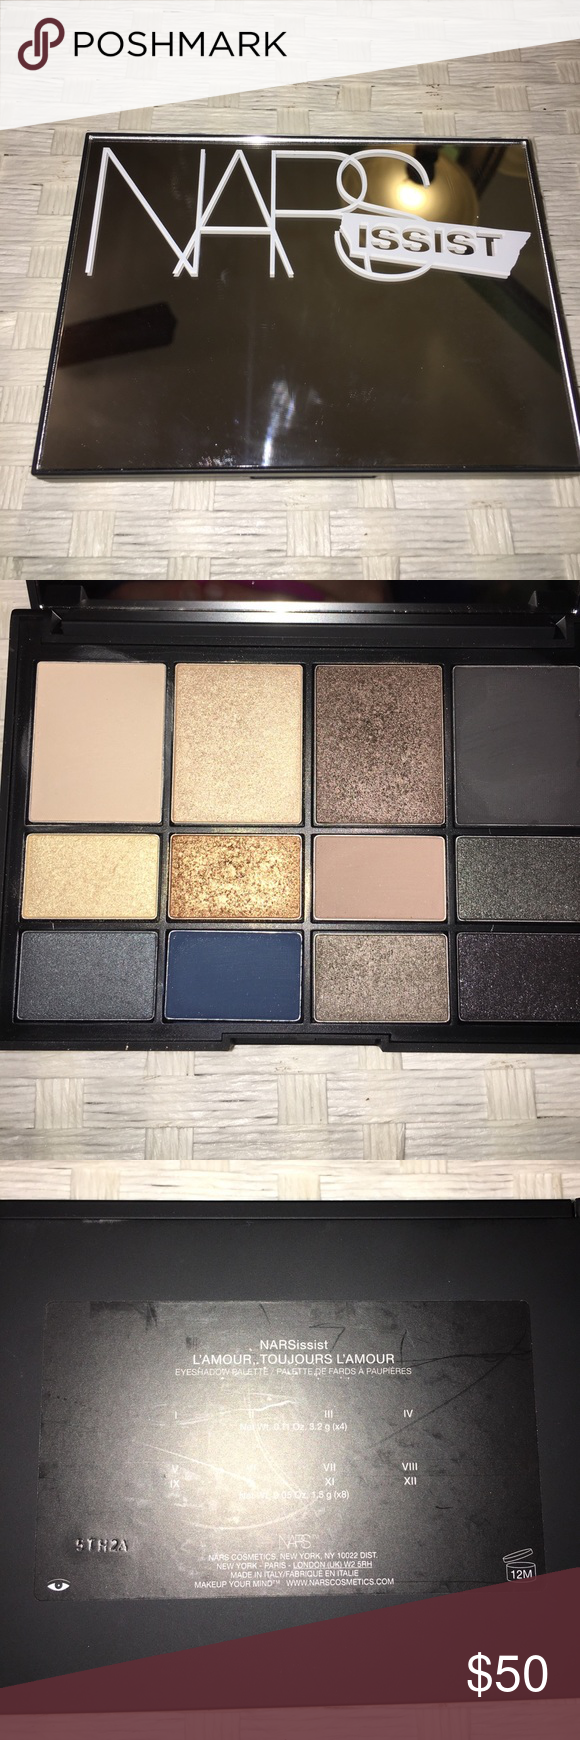 ✨✨✨NARS NARSissist Eyeshadow Palette✨✨ *Gently used* includes 4 matte shades and 8 shimmer shades. A beautiful neutral palette with super a creamy shade selection. This is a Limited Edition item. NARS Makeup Eyeshadow